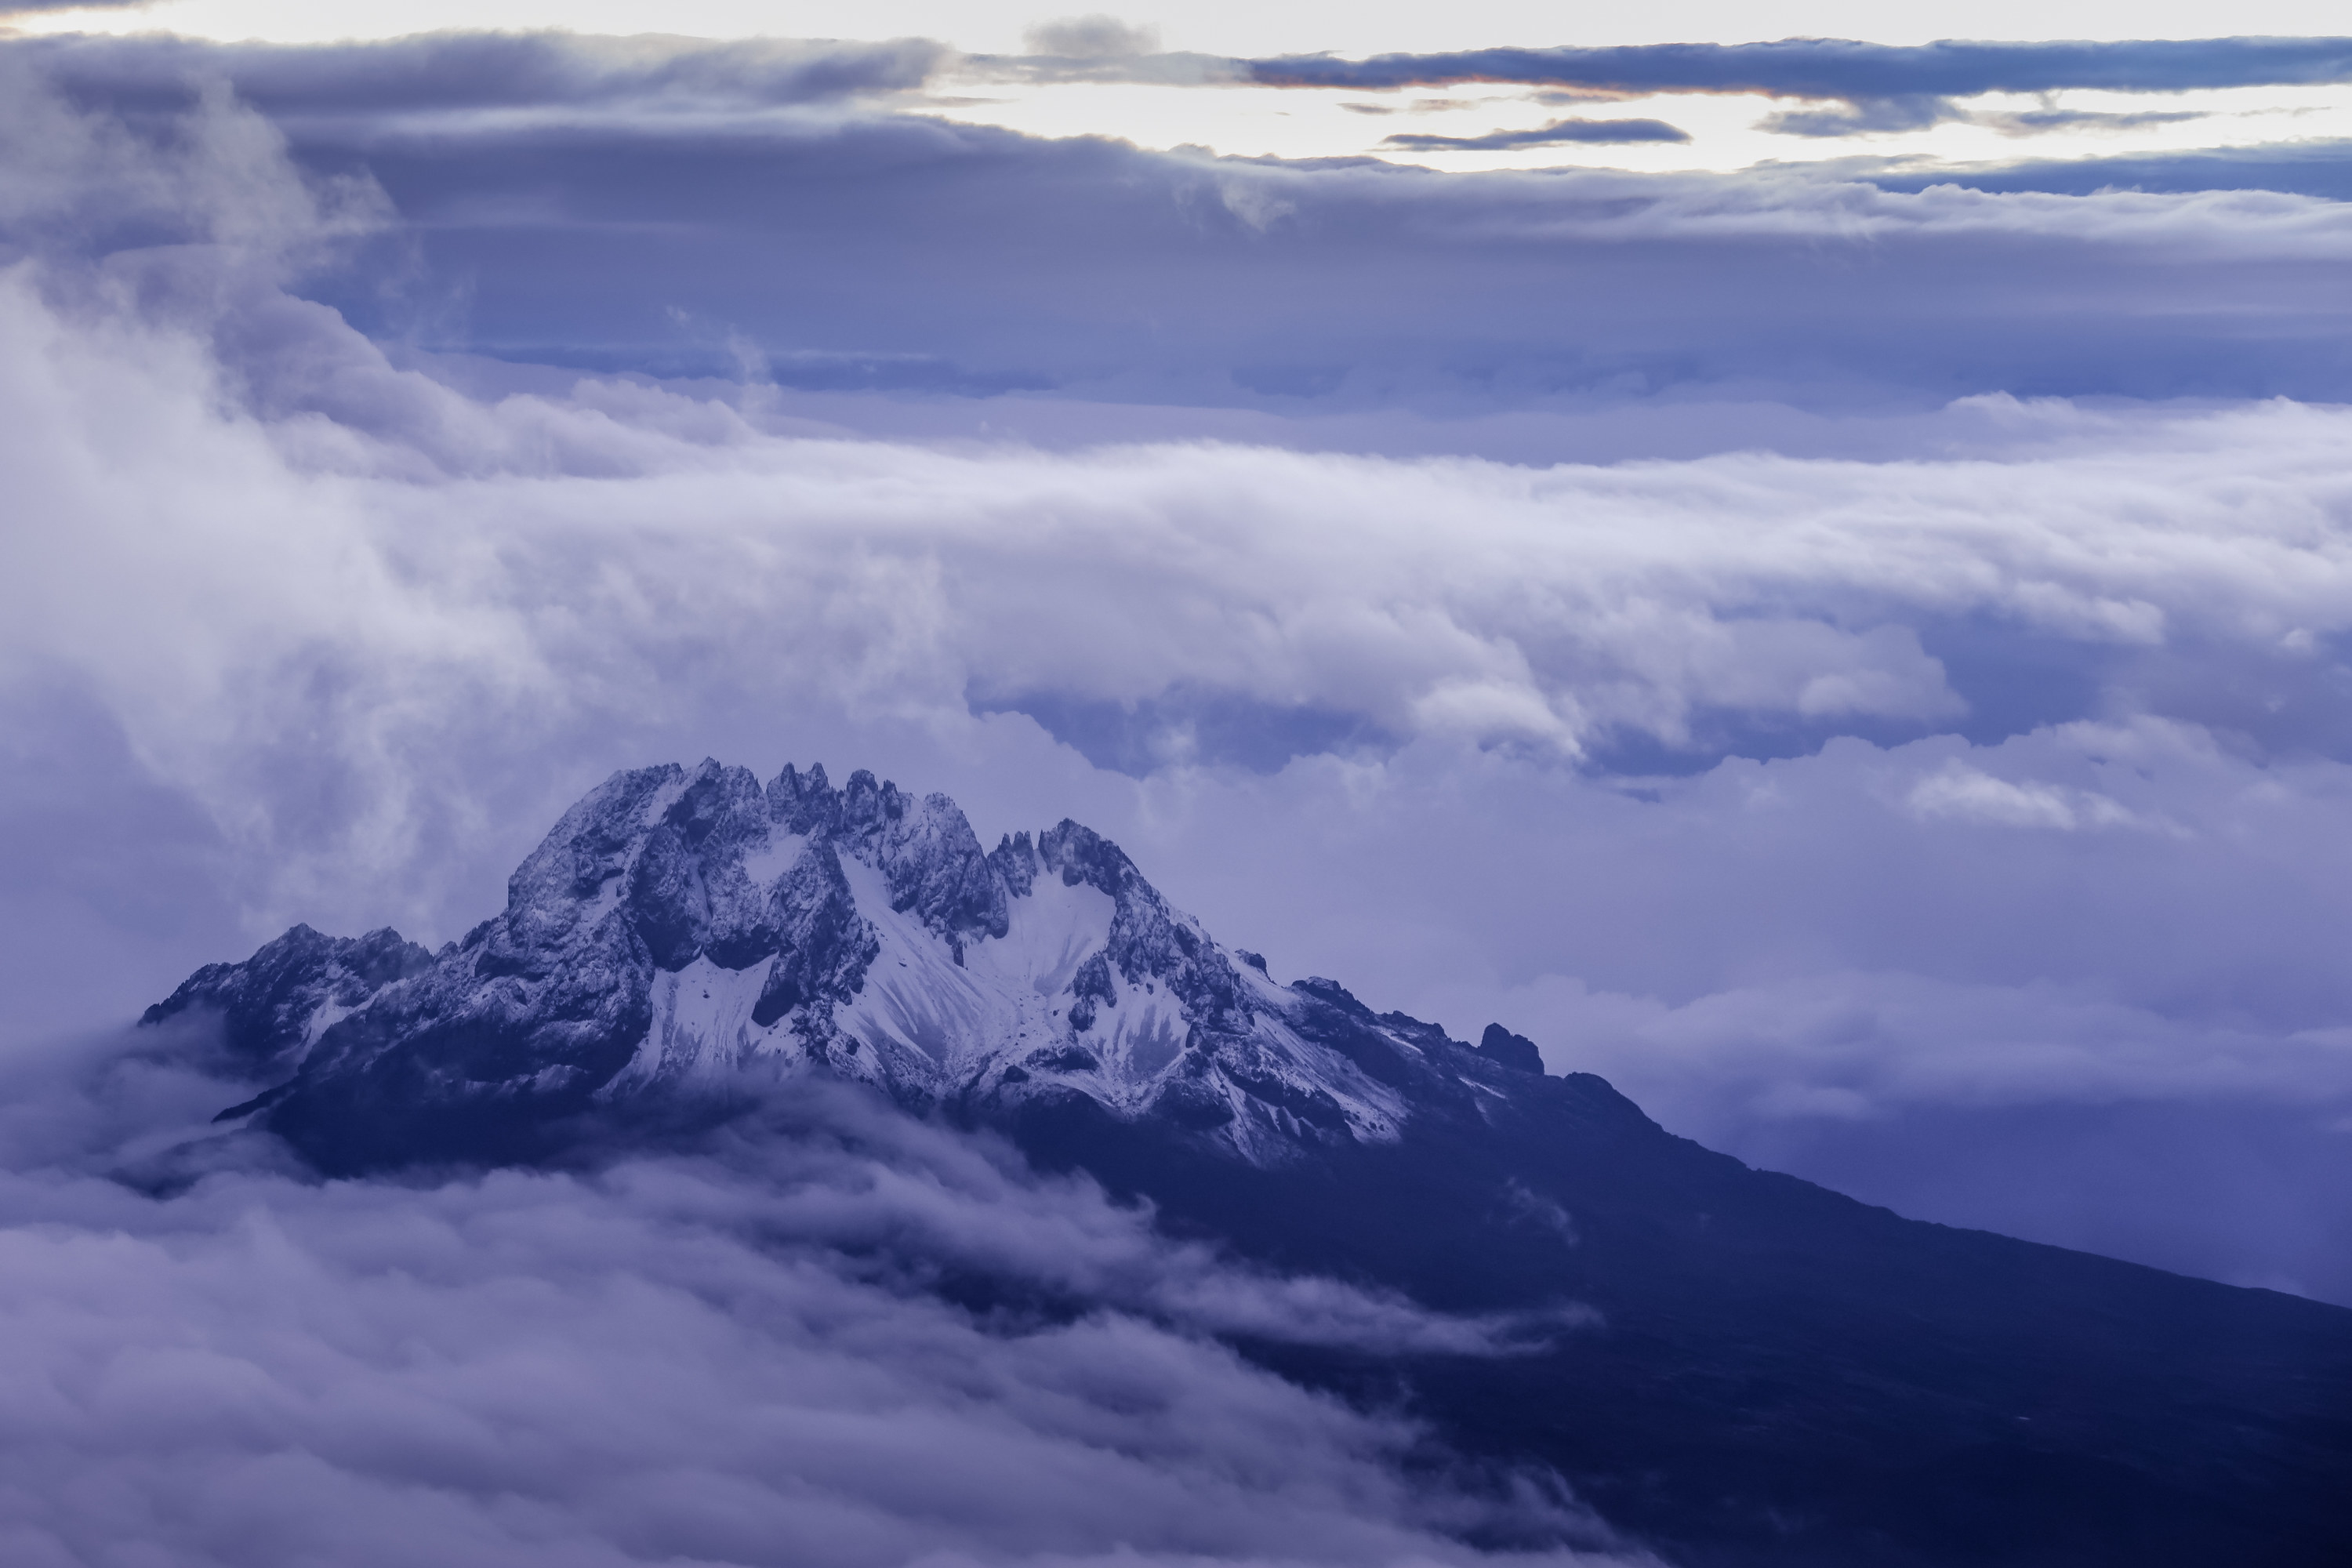 View of snow-capped Mount Kiliminjaro with white clouds surrounding the peak.